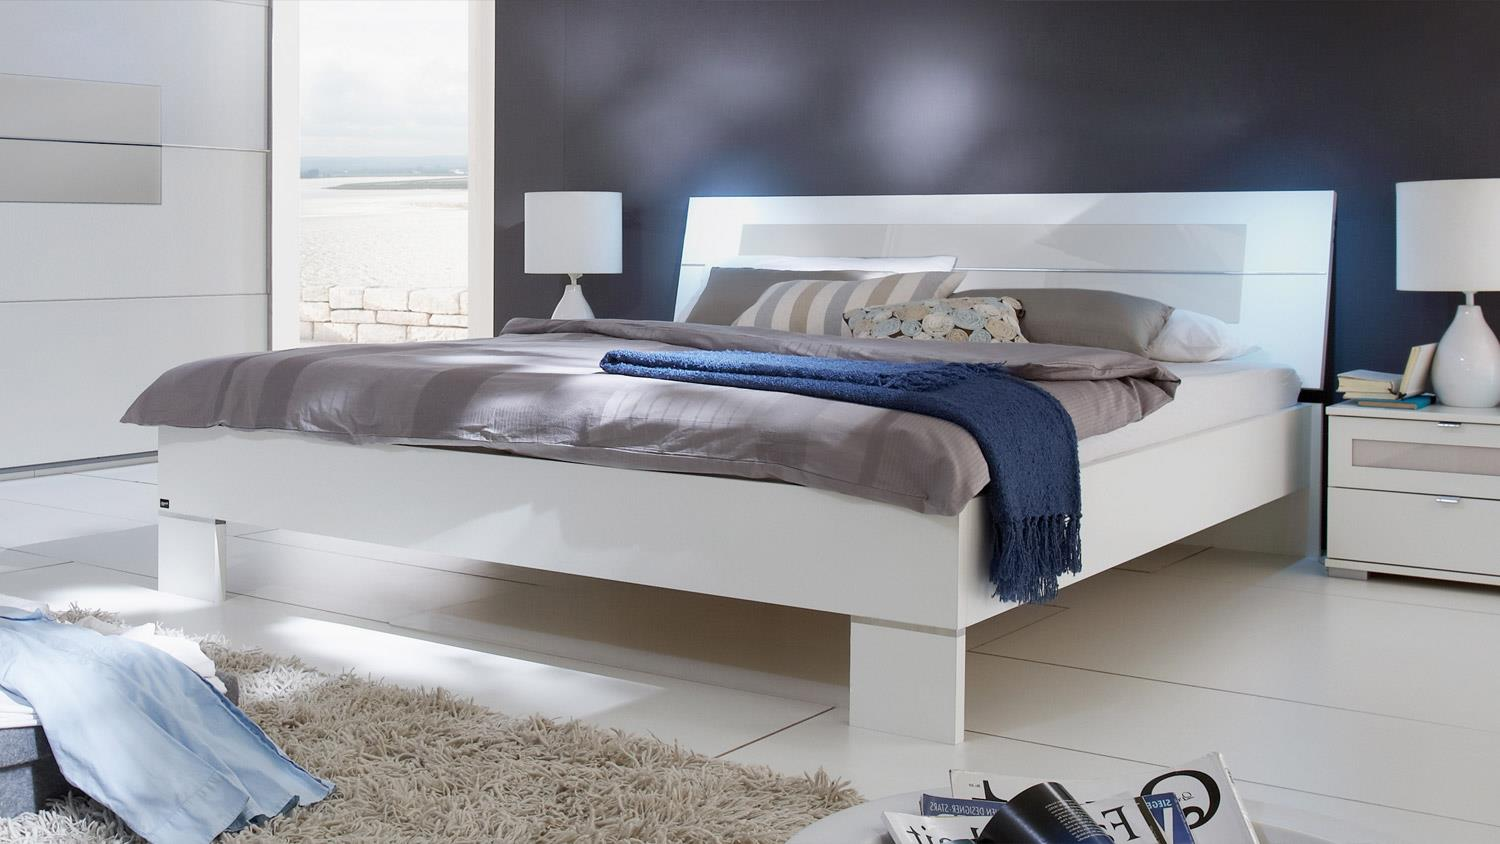 bett advantage bettgestell in schlammeiche und glas gelb grau 180x200. Black Bedroom Furniture Sets. Home Design Ideas